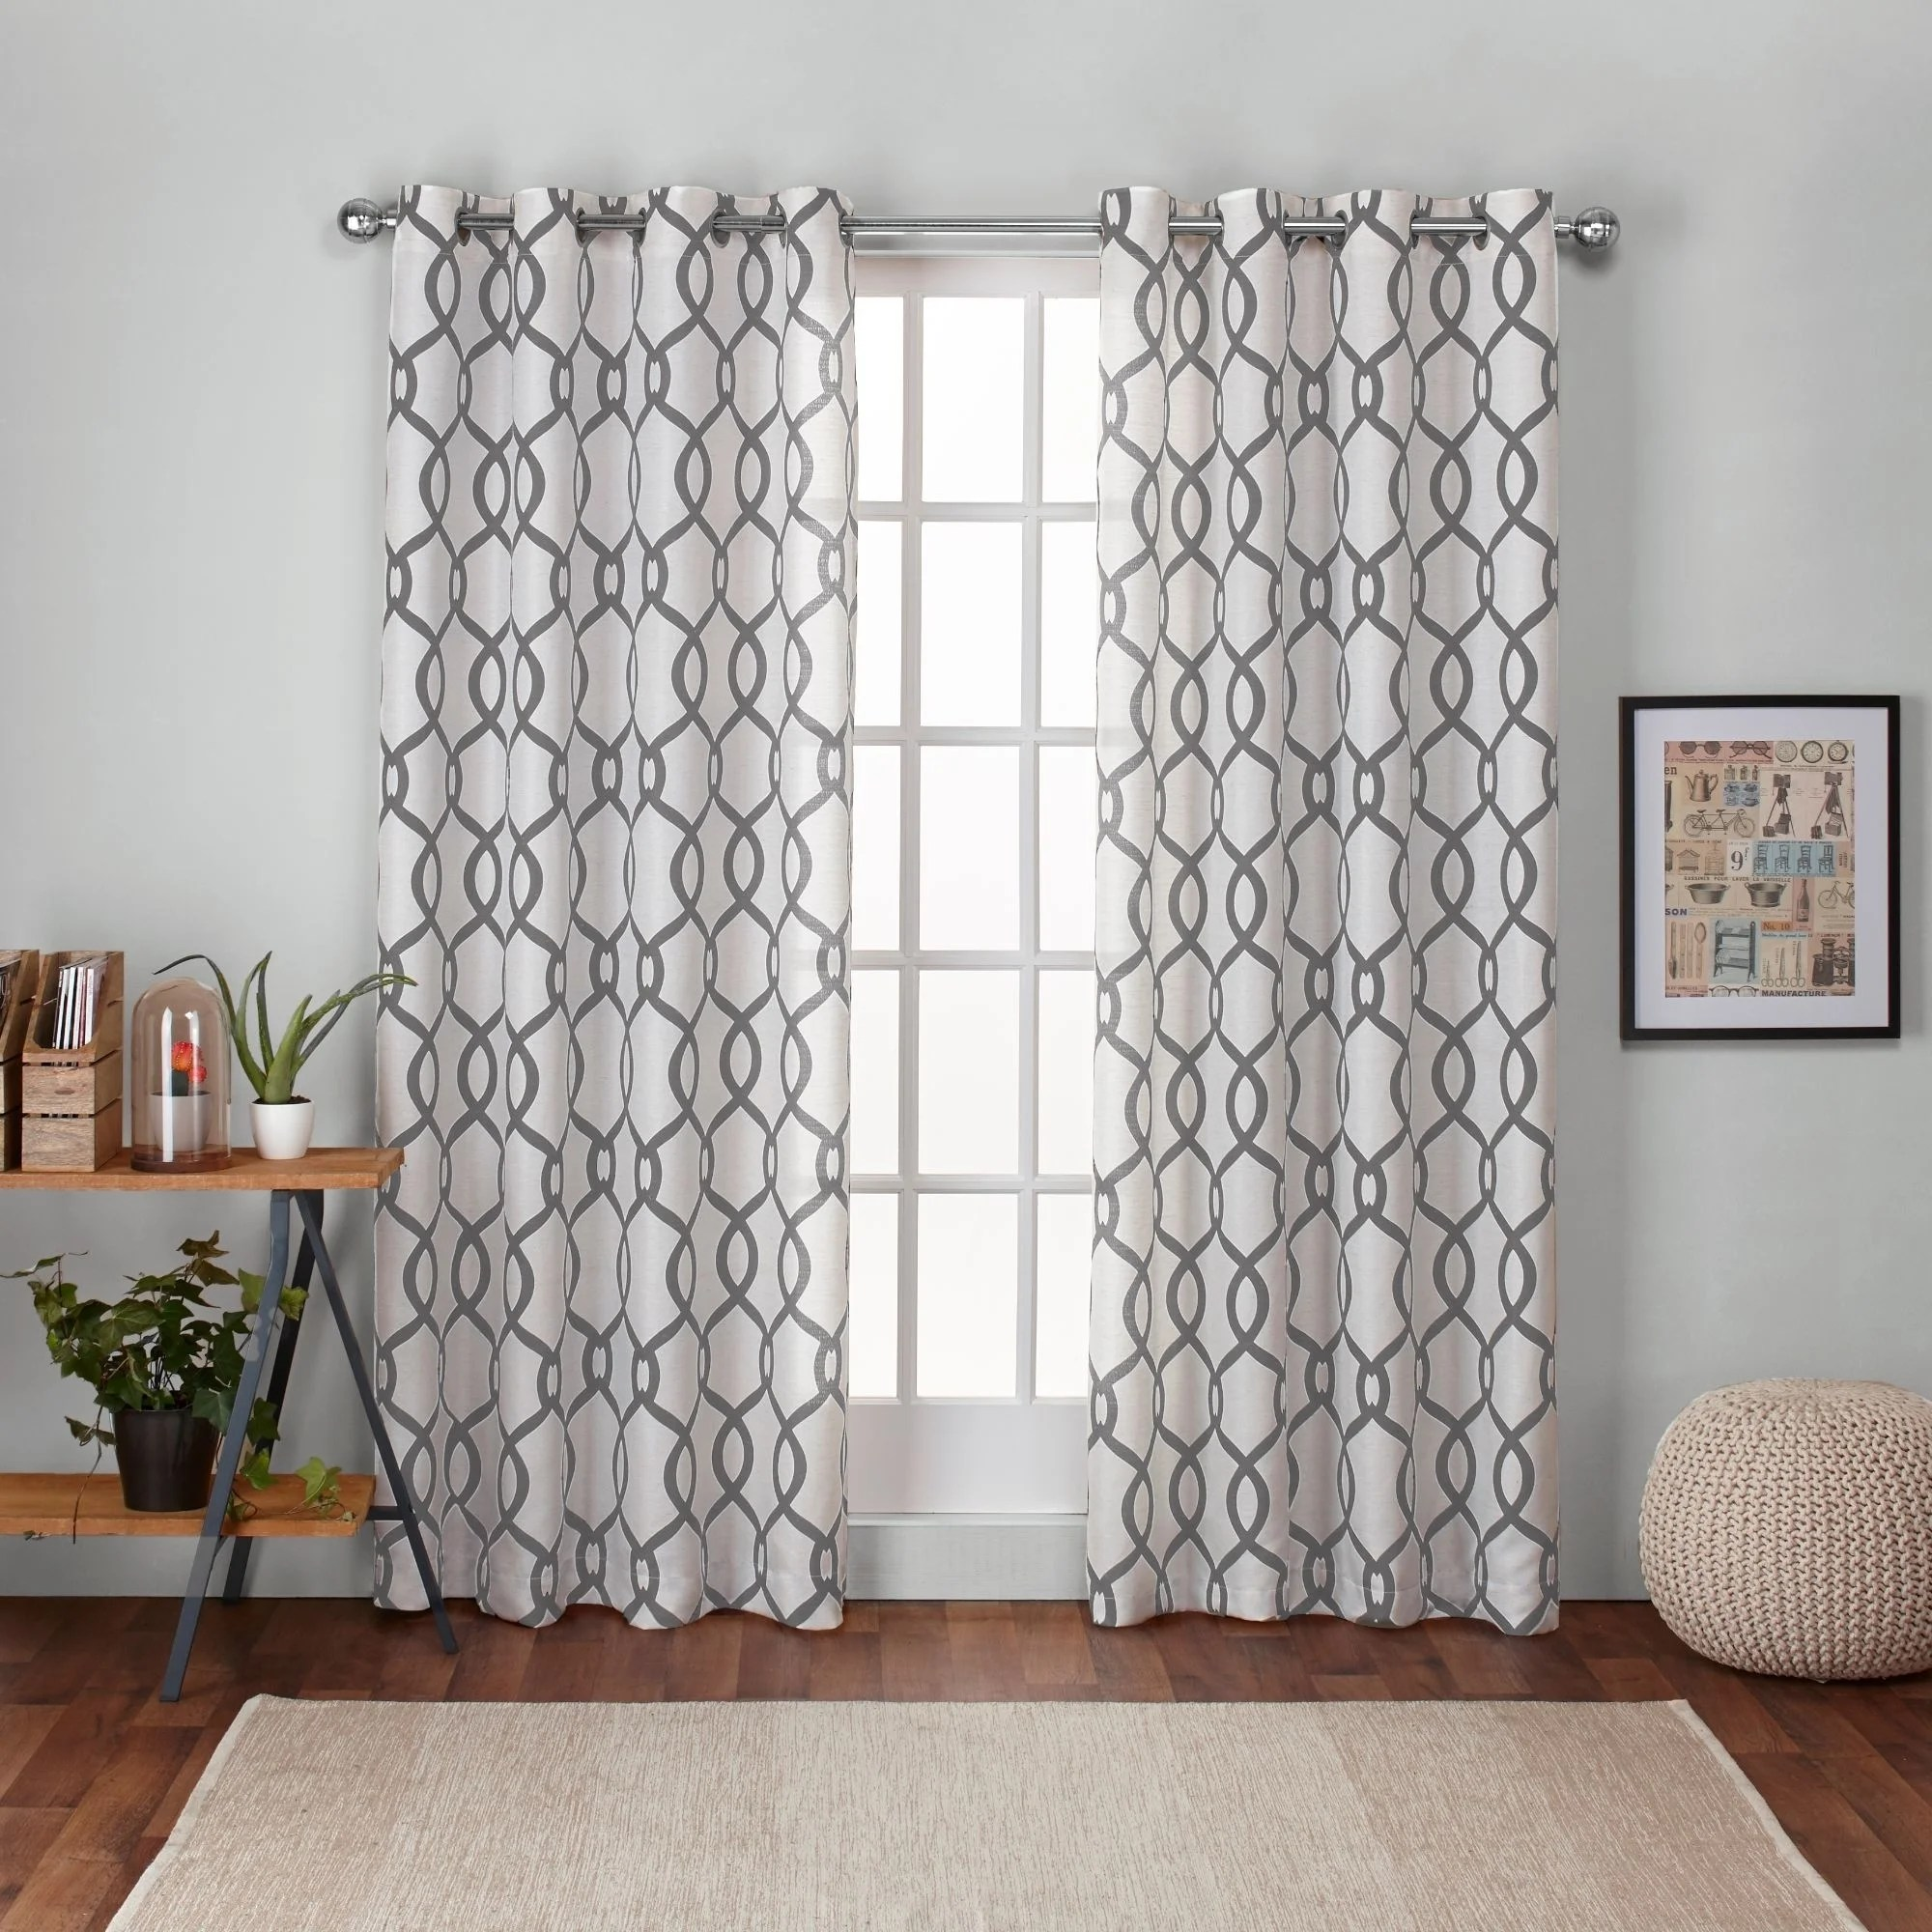 Cheap Stylish Curtains Buy Curtains Drapes Online At Overstock Our Best Window